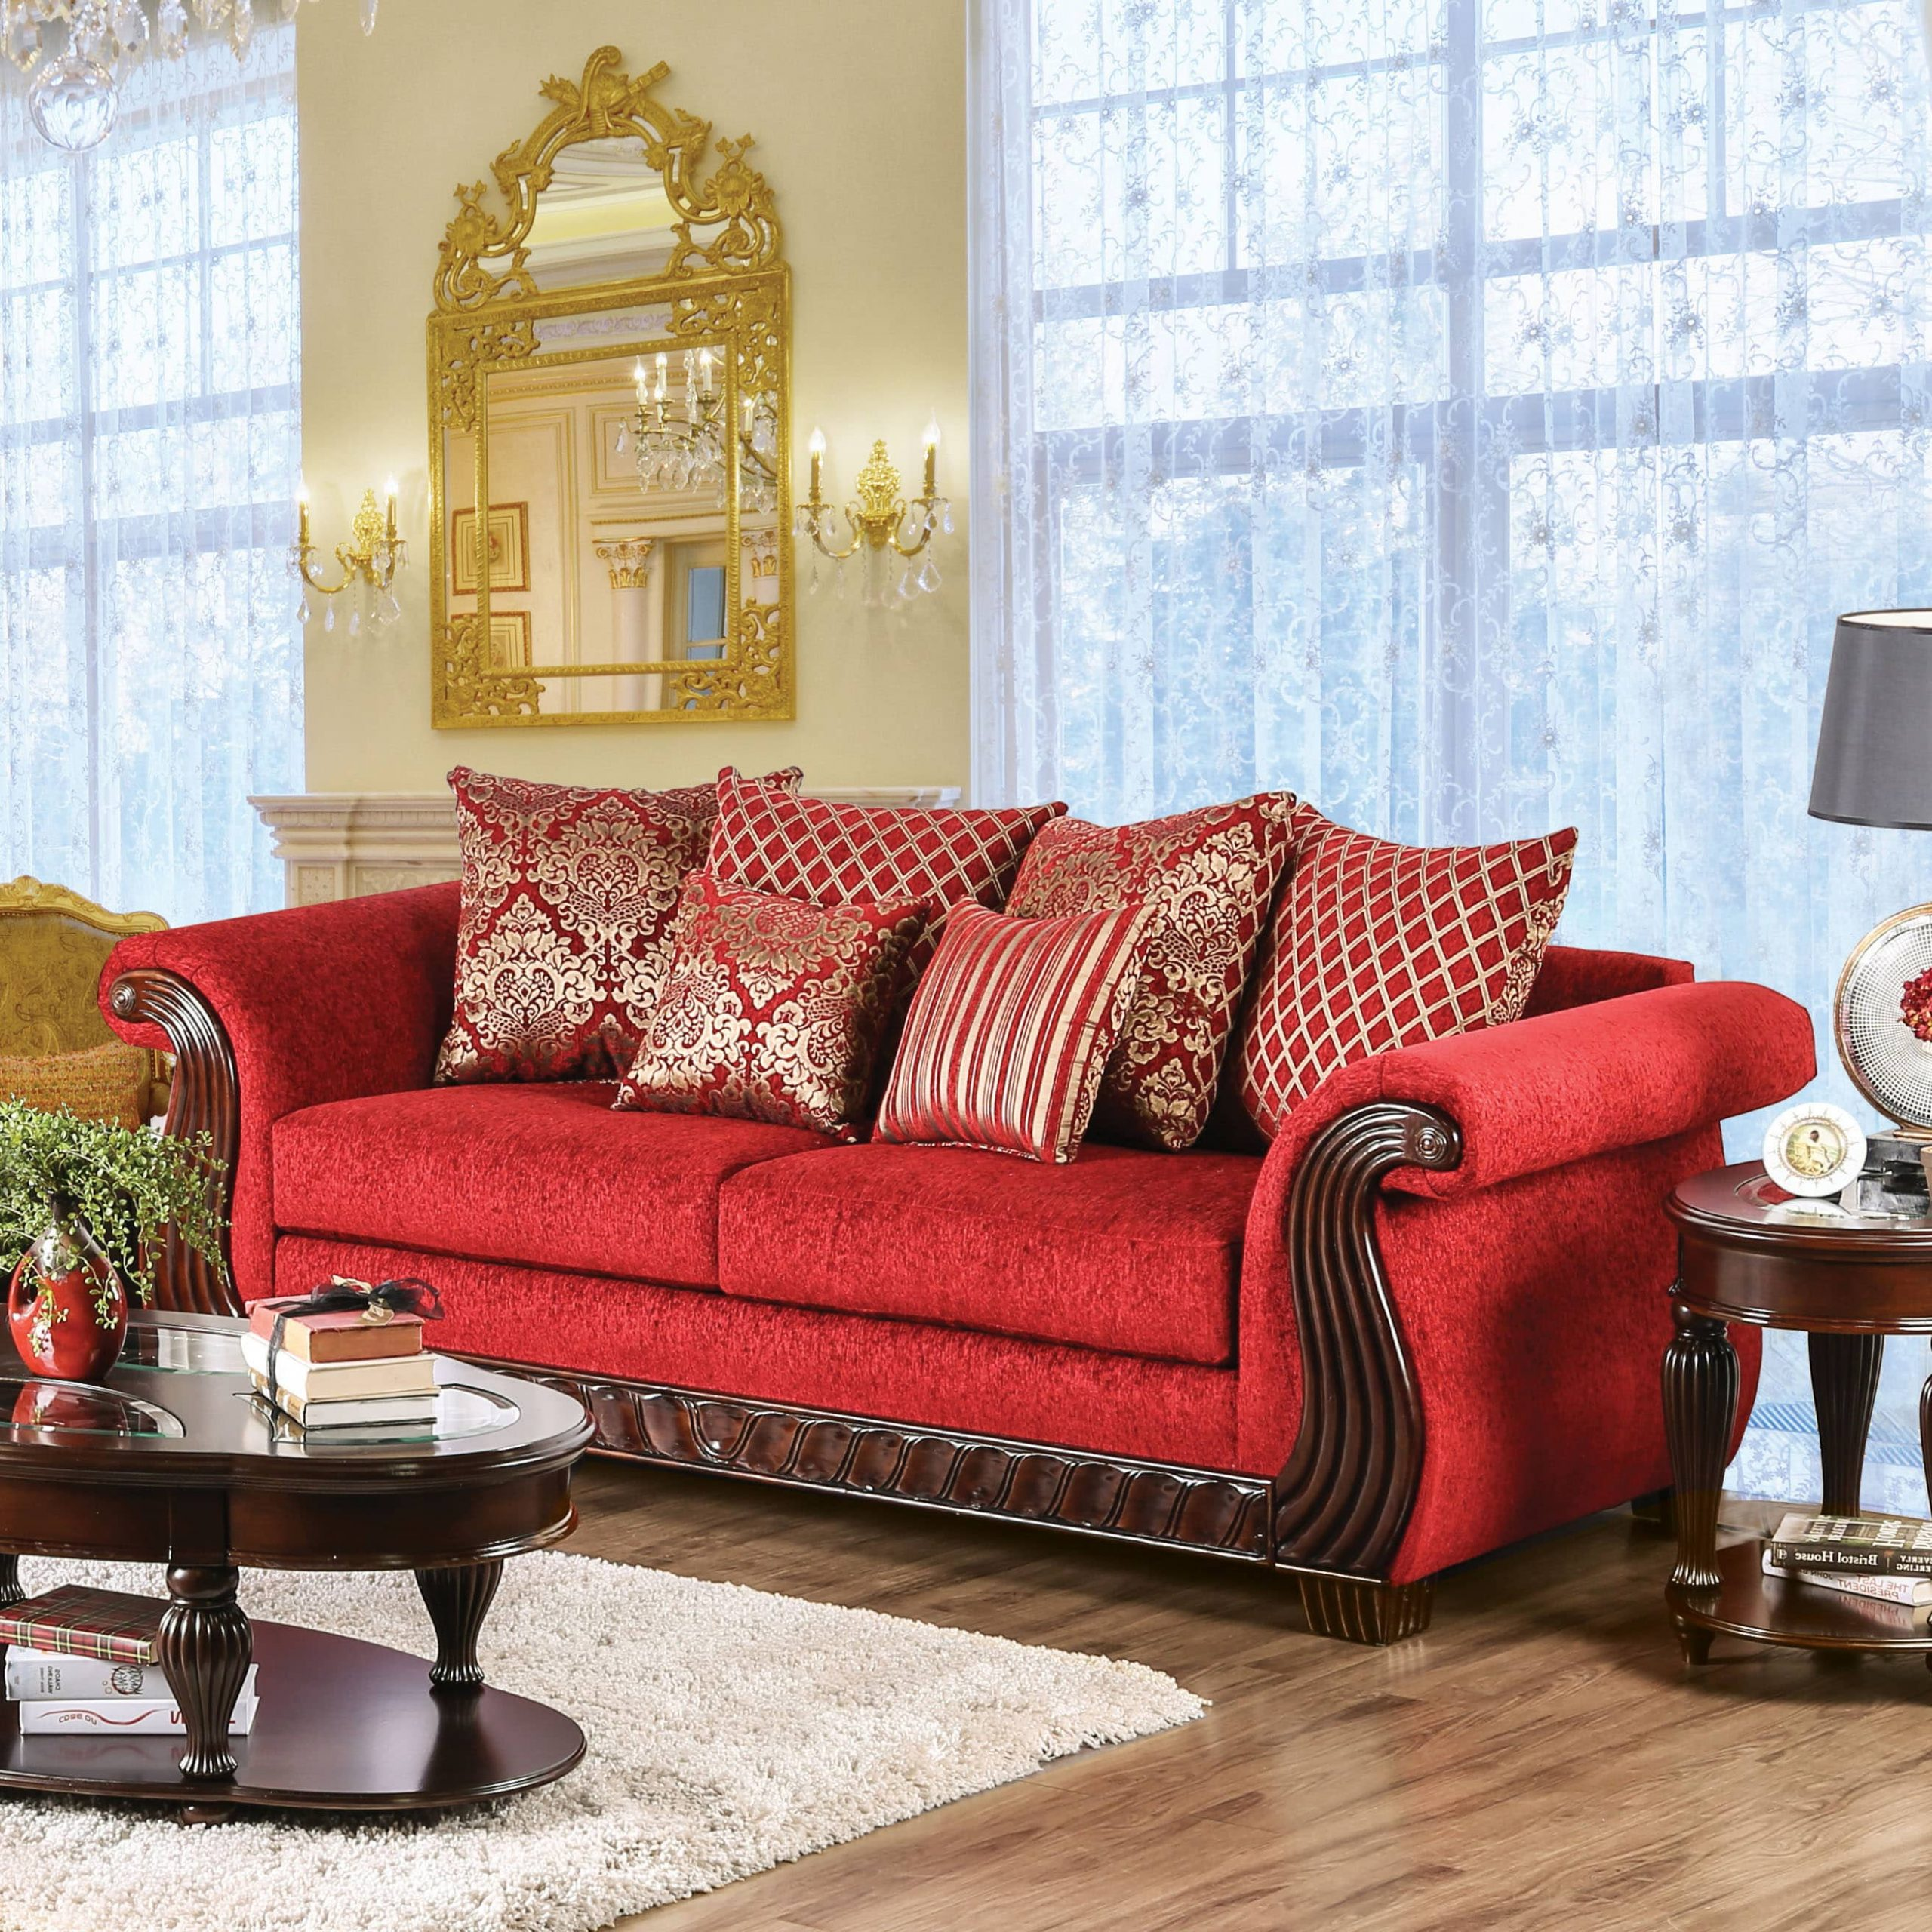 Trendy Furniture Of America Ferga Traditional Wood Trim Ruby Red Pertaining To Red Sofas (View 2 of 20)